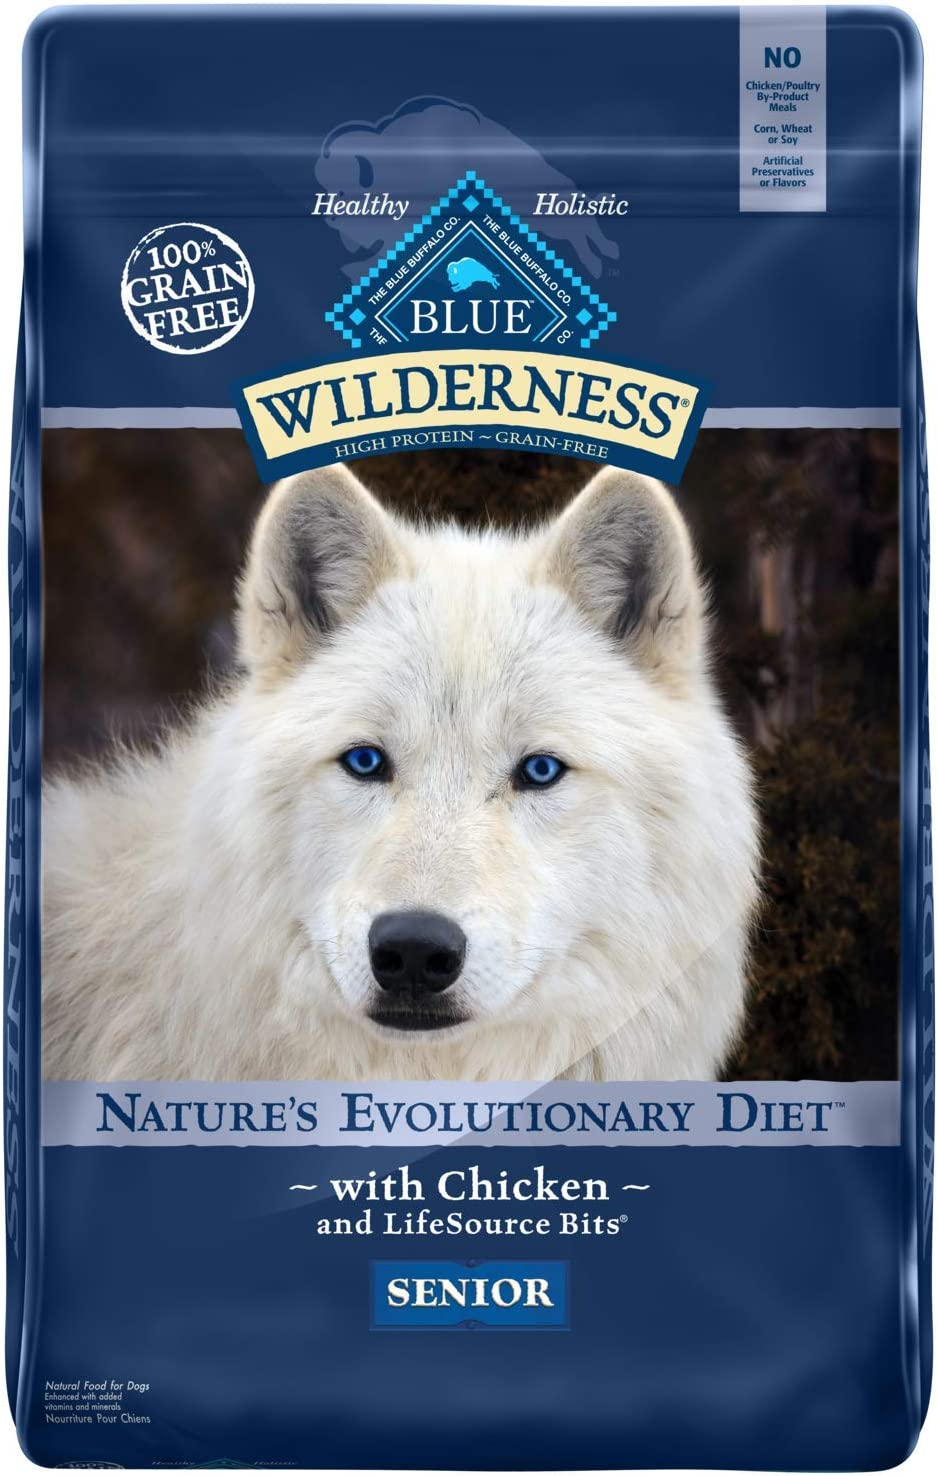 6. Blue Buffalo Wilderness Senior Grain-Free Dry Dog Food